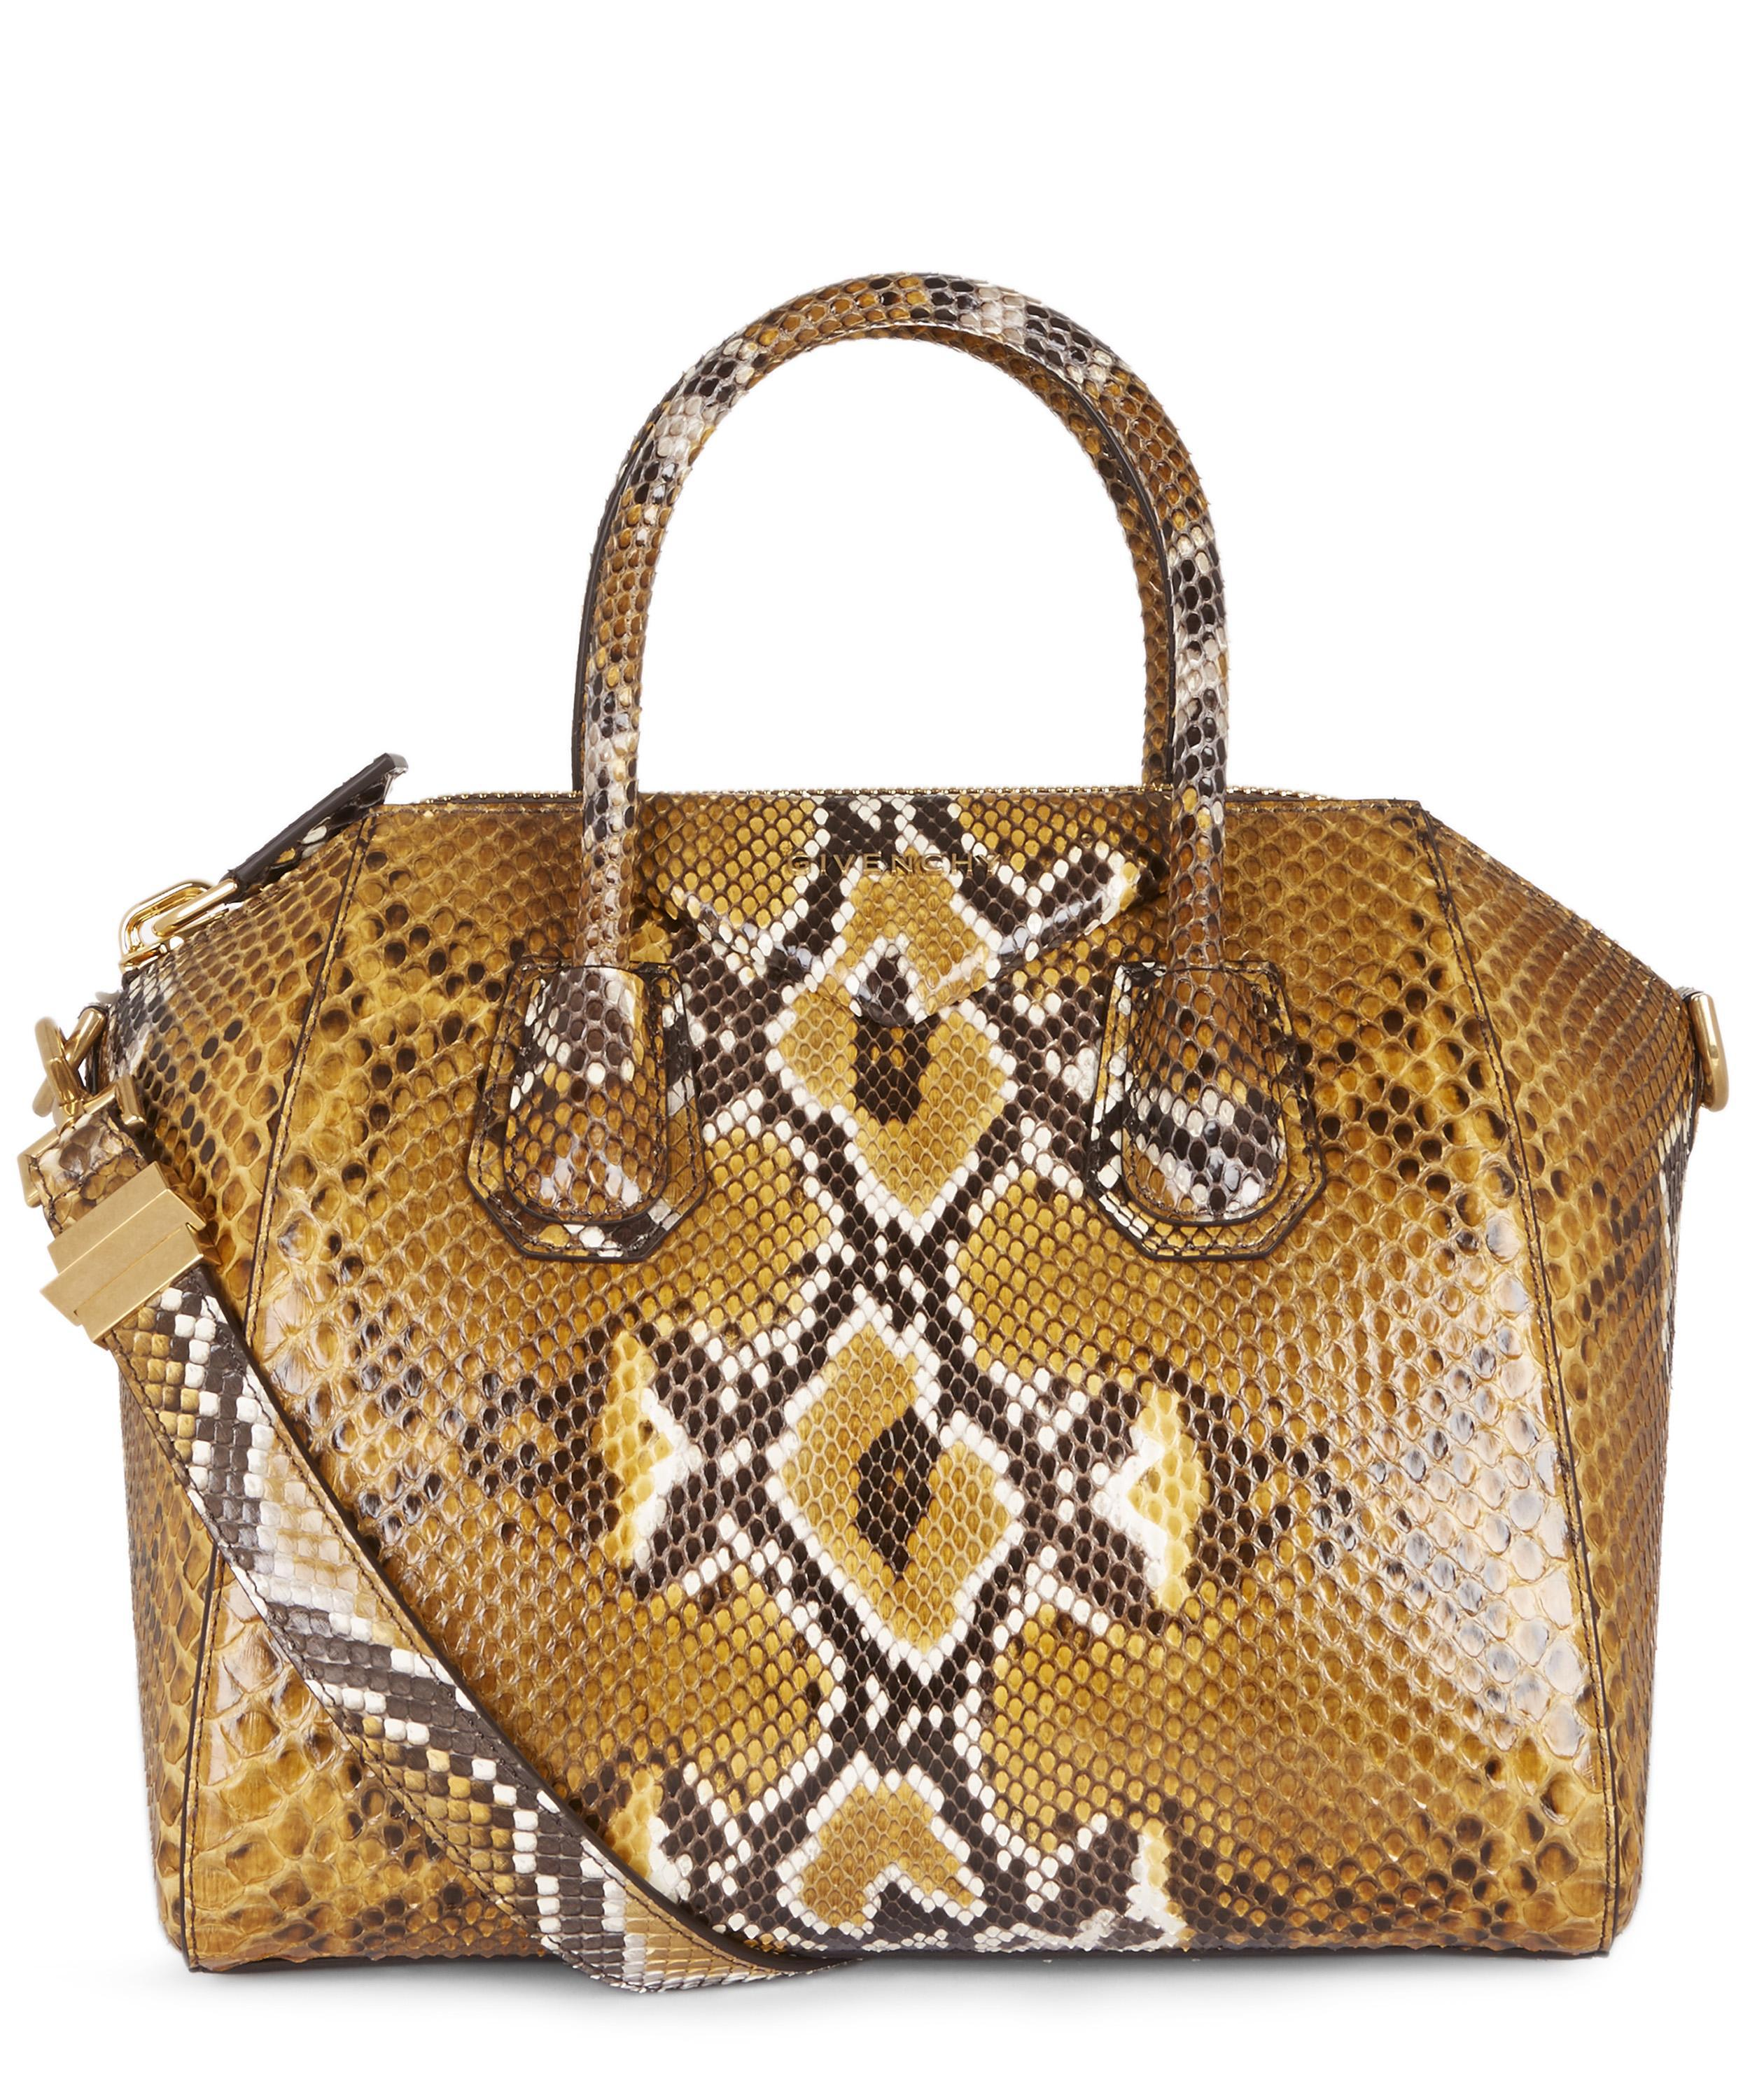 021a5d1de7a0 Givenchy Antigona In Python in Metallic - Lyst